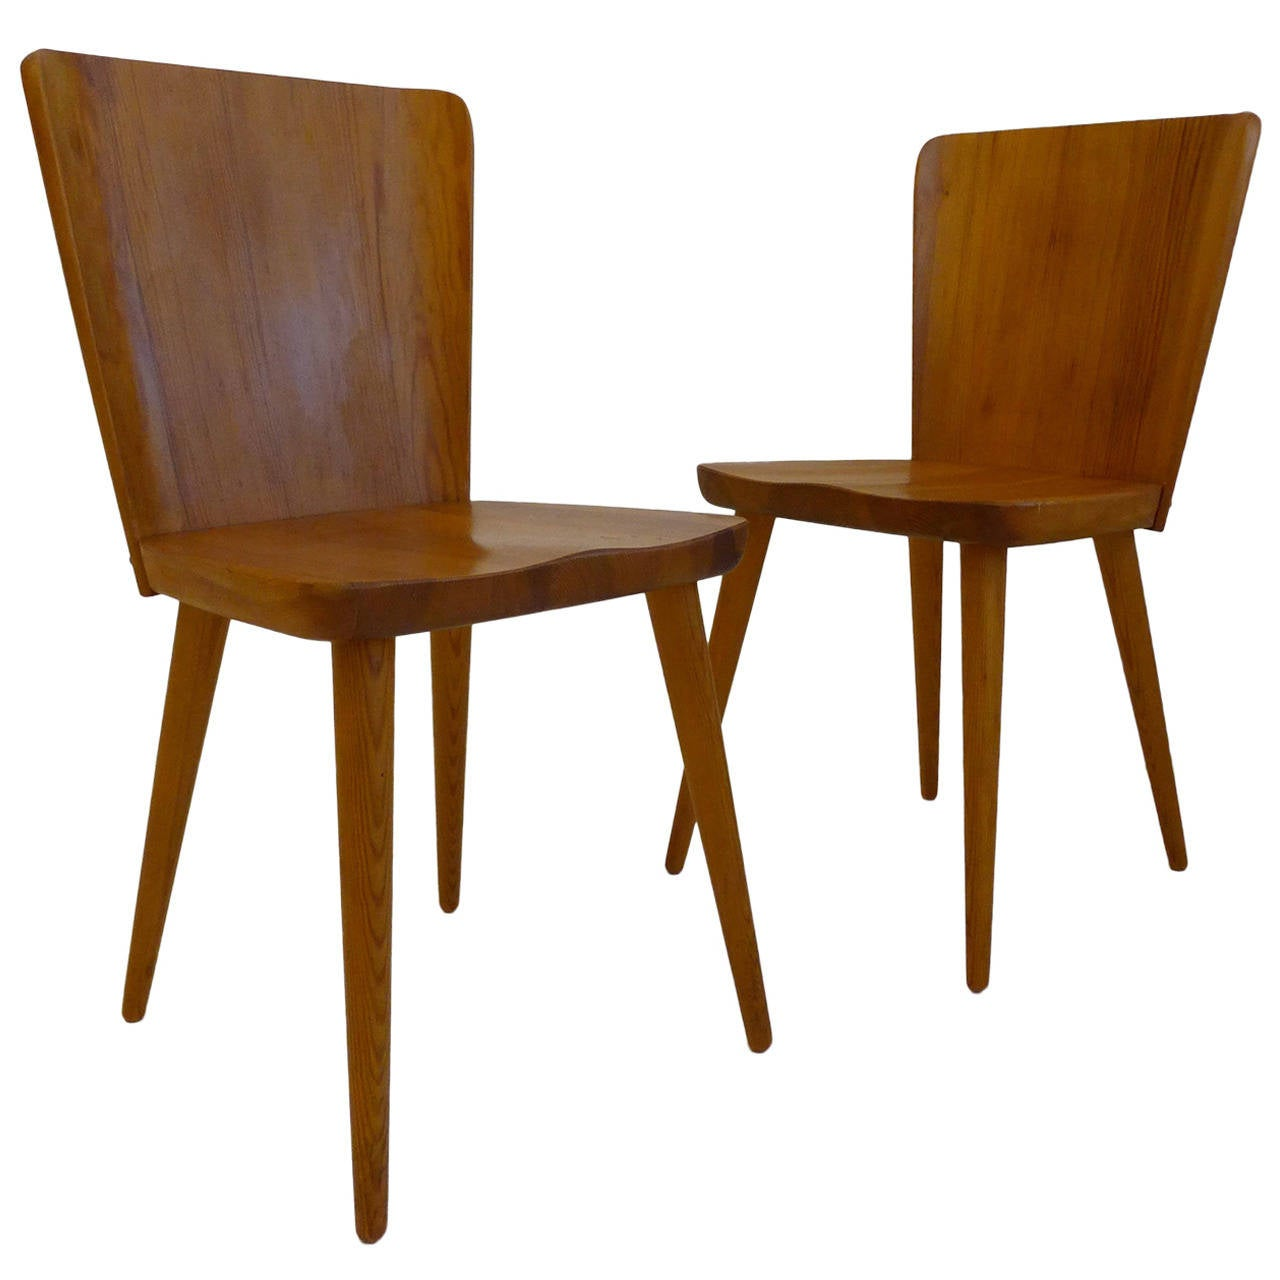 Pair Of Mid Century Swedish Chairs In Pine 1